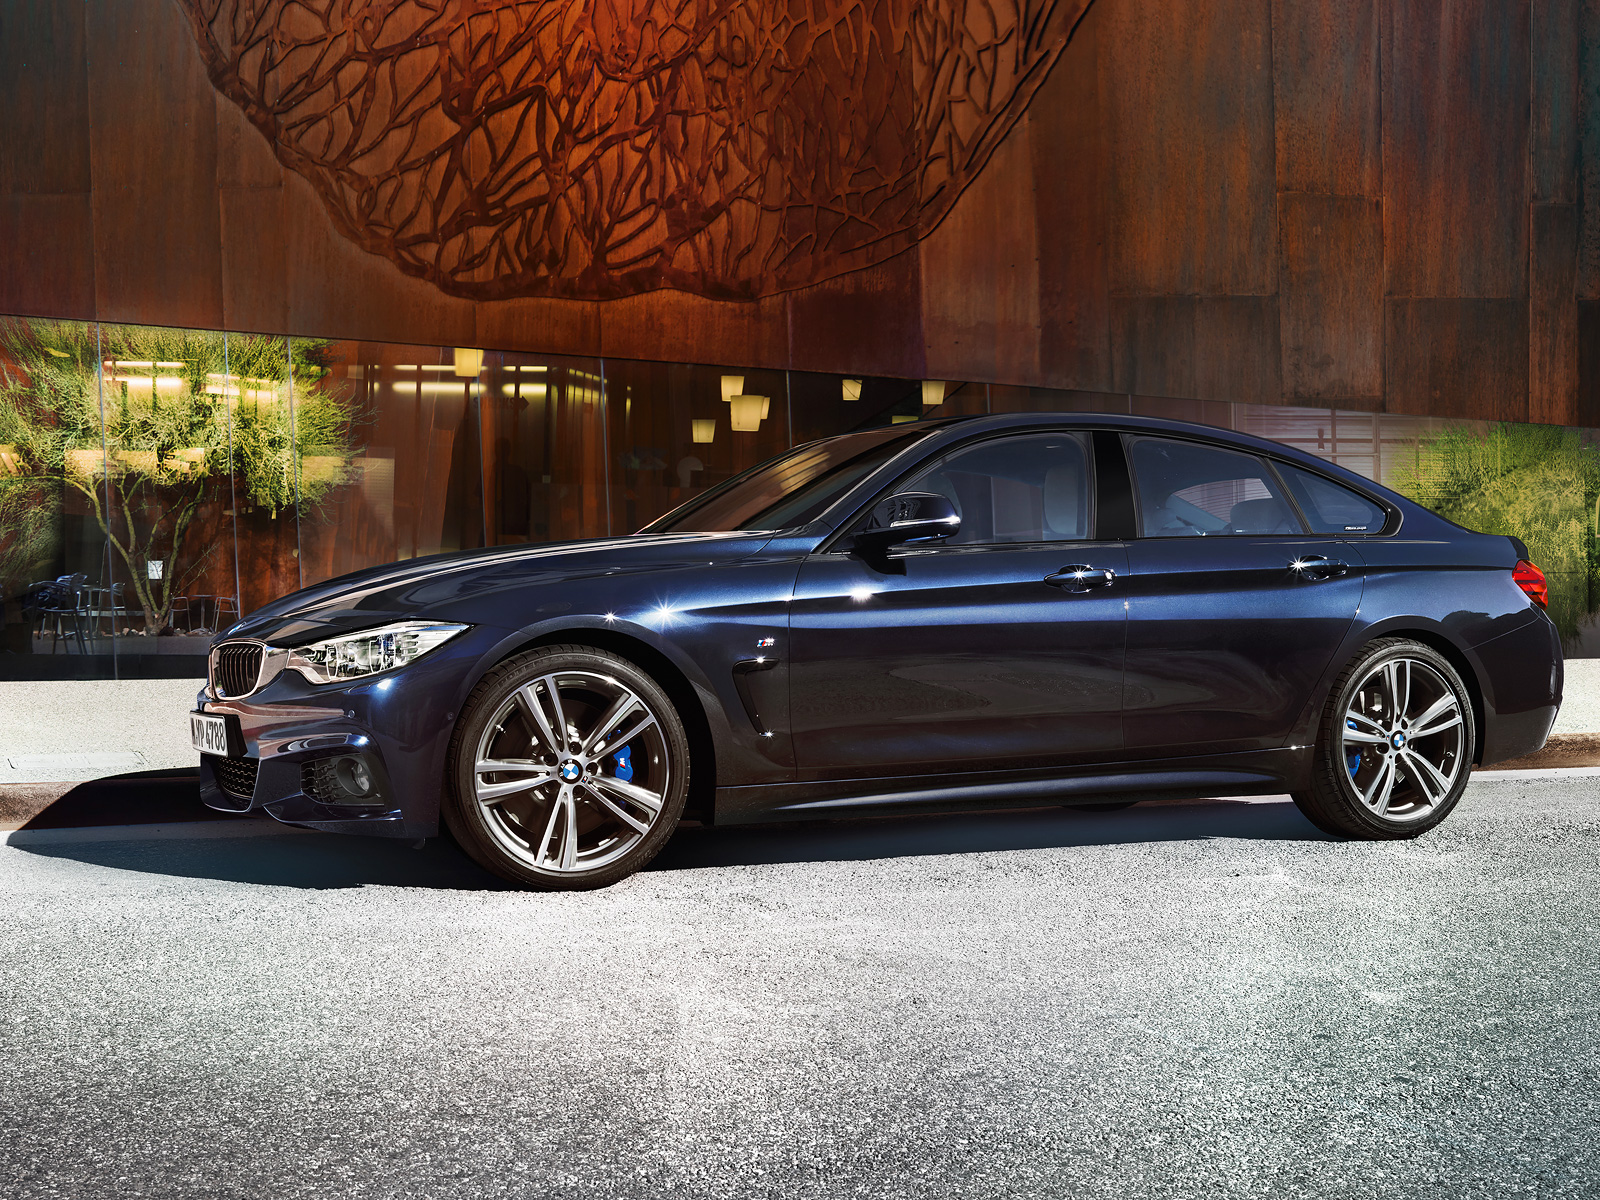 BMW USA Sales Up 7% In March 2015